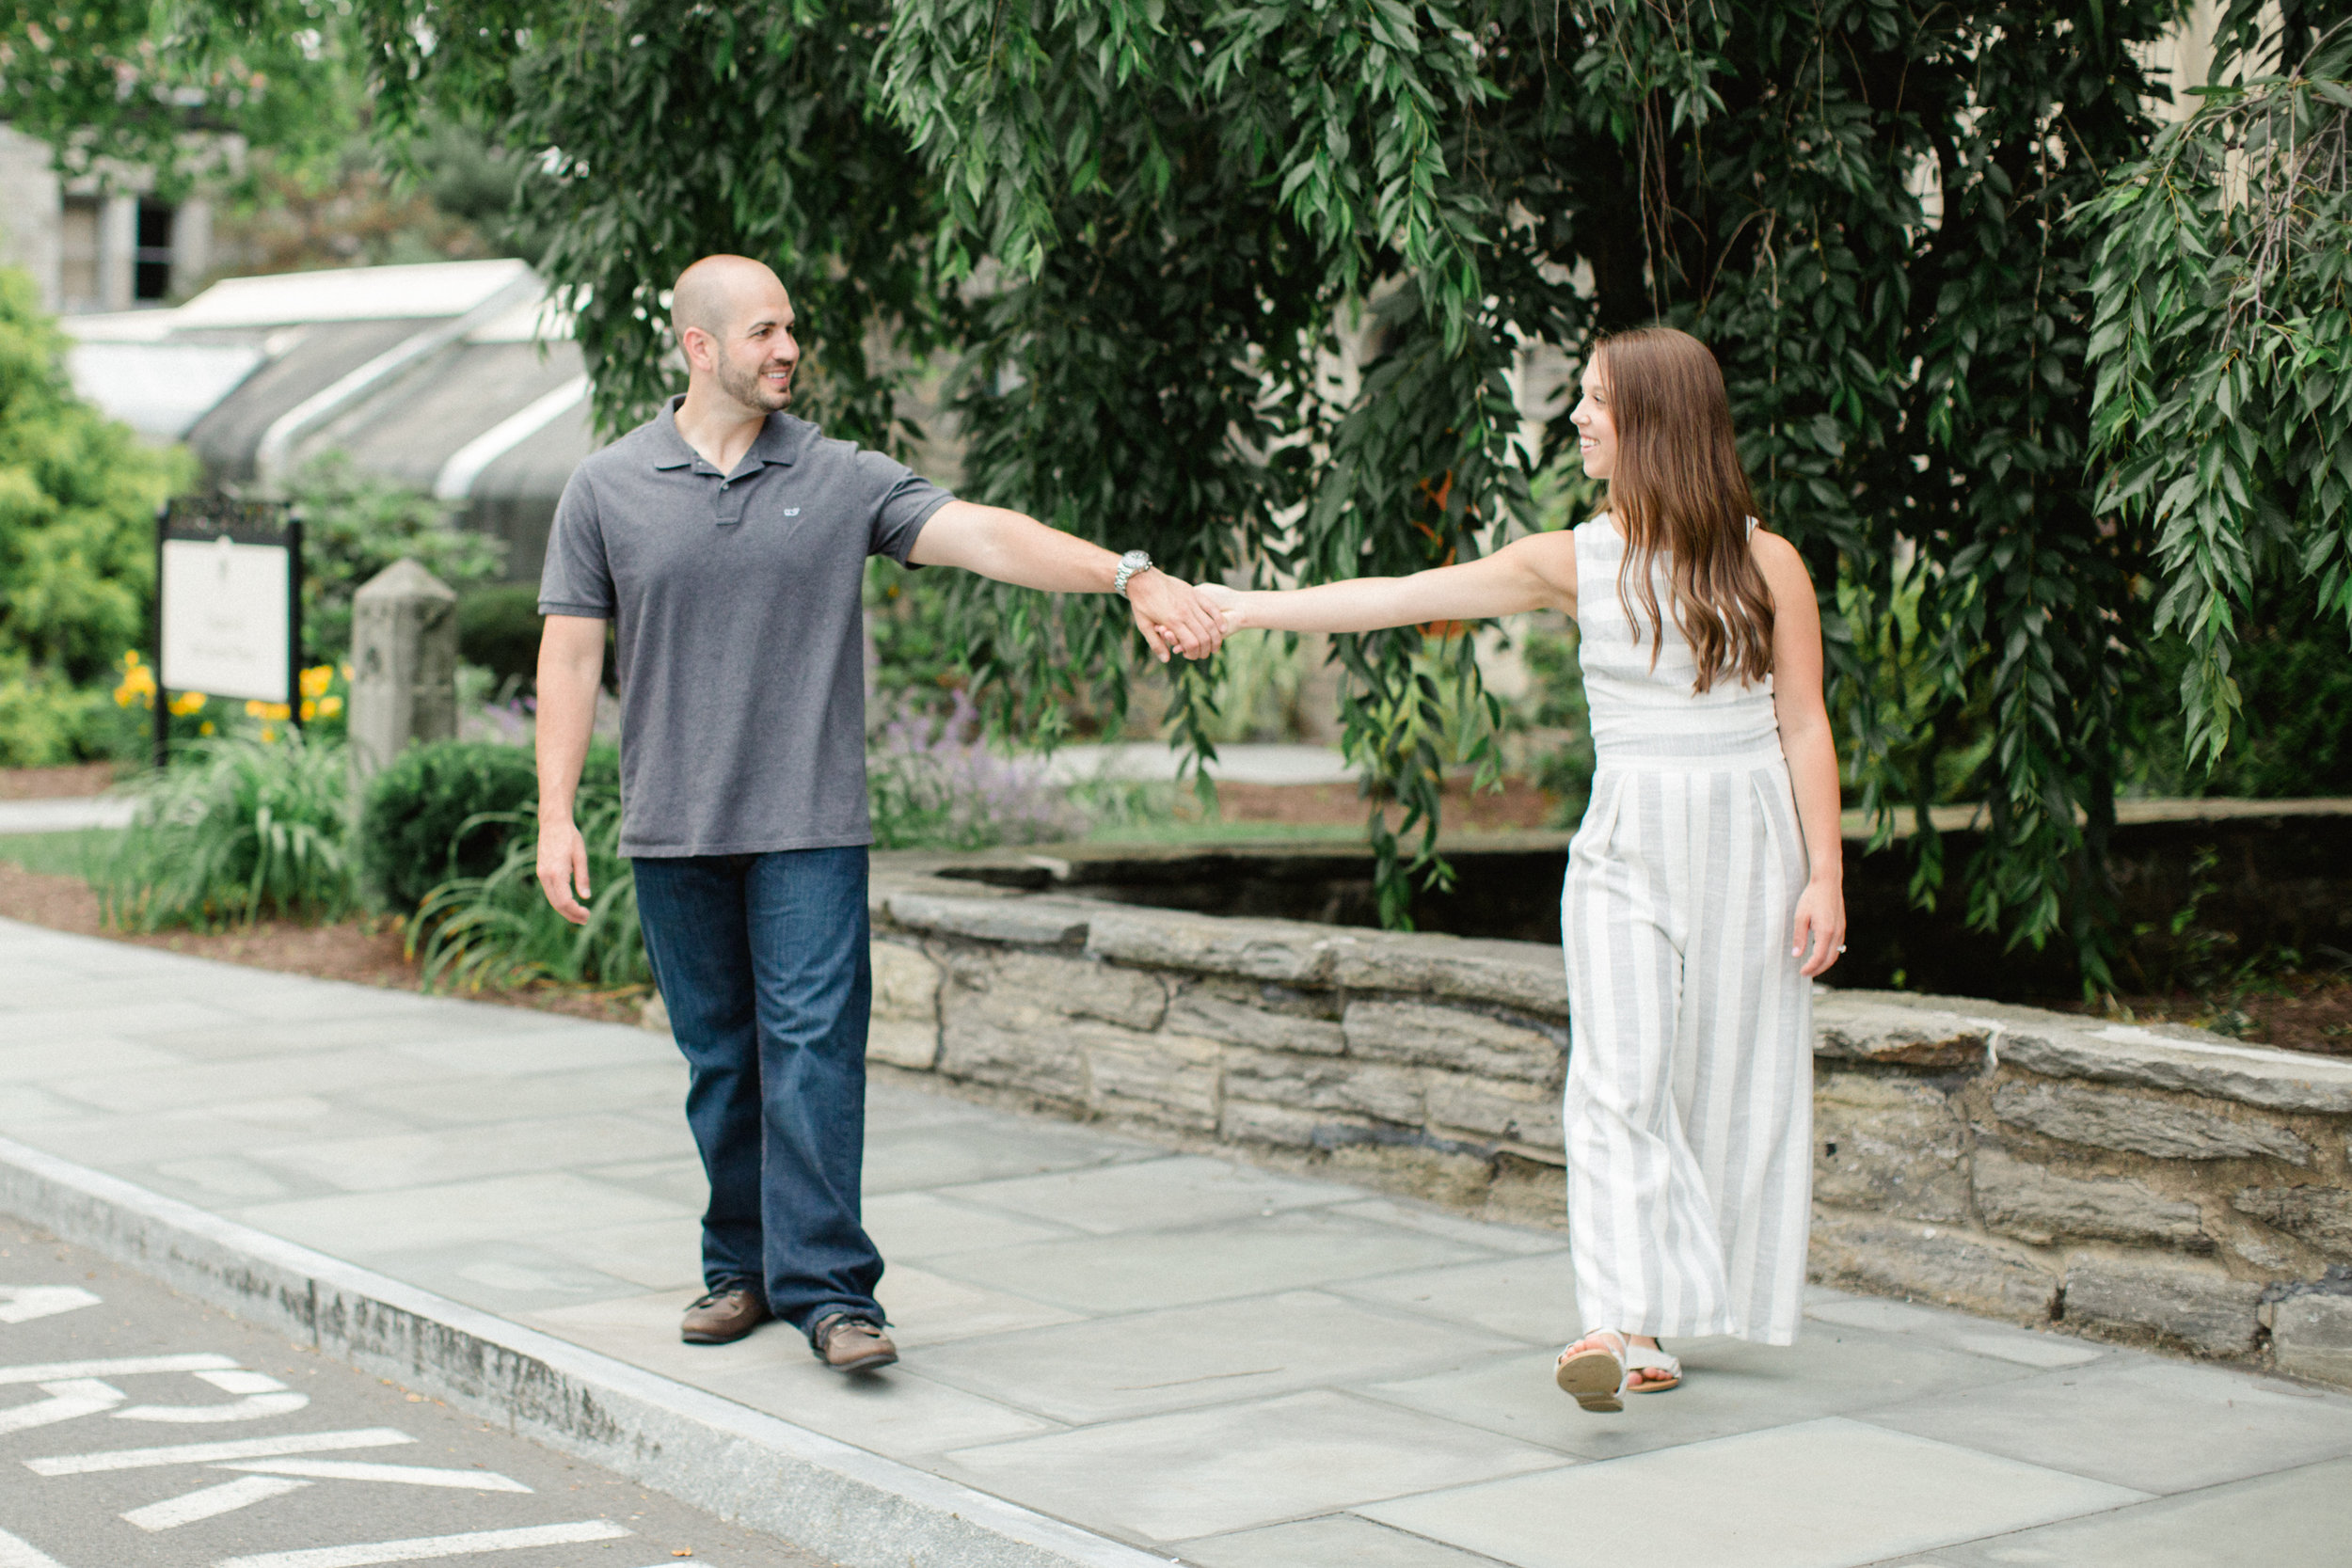 University of Scranton Engagement Session Photos_JDP-52.jpg